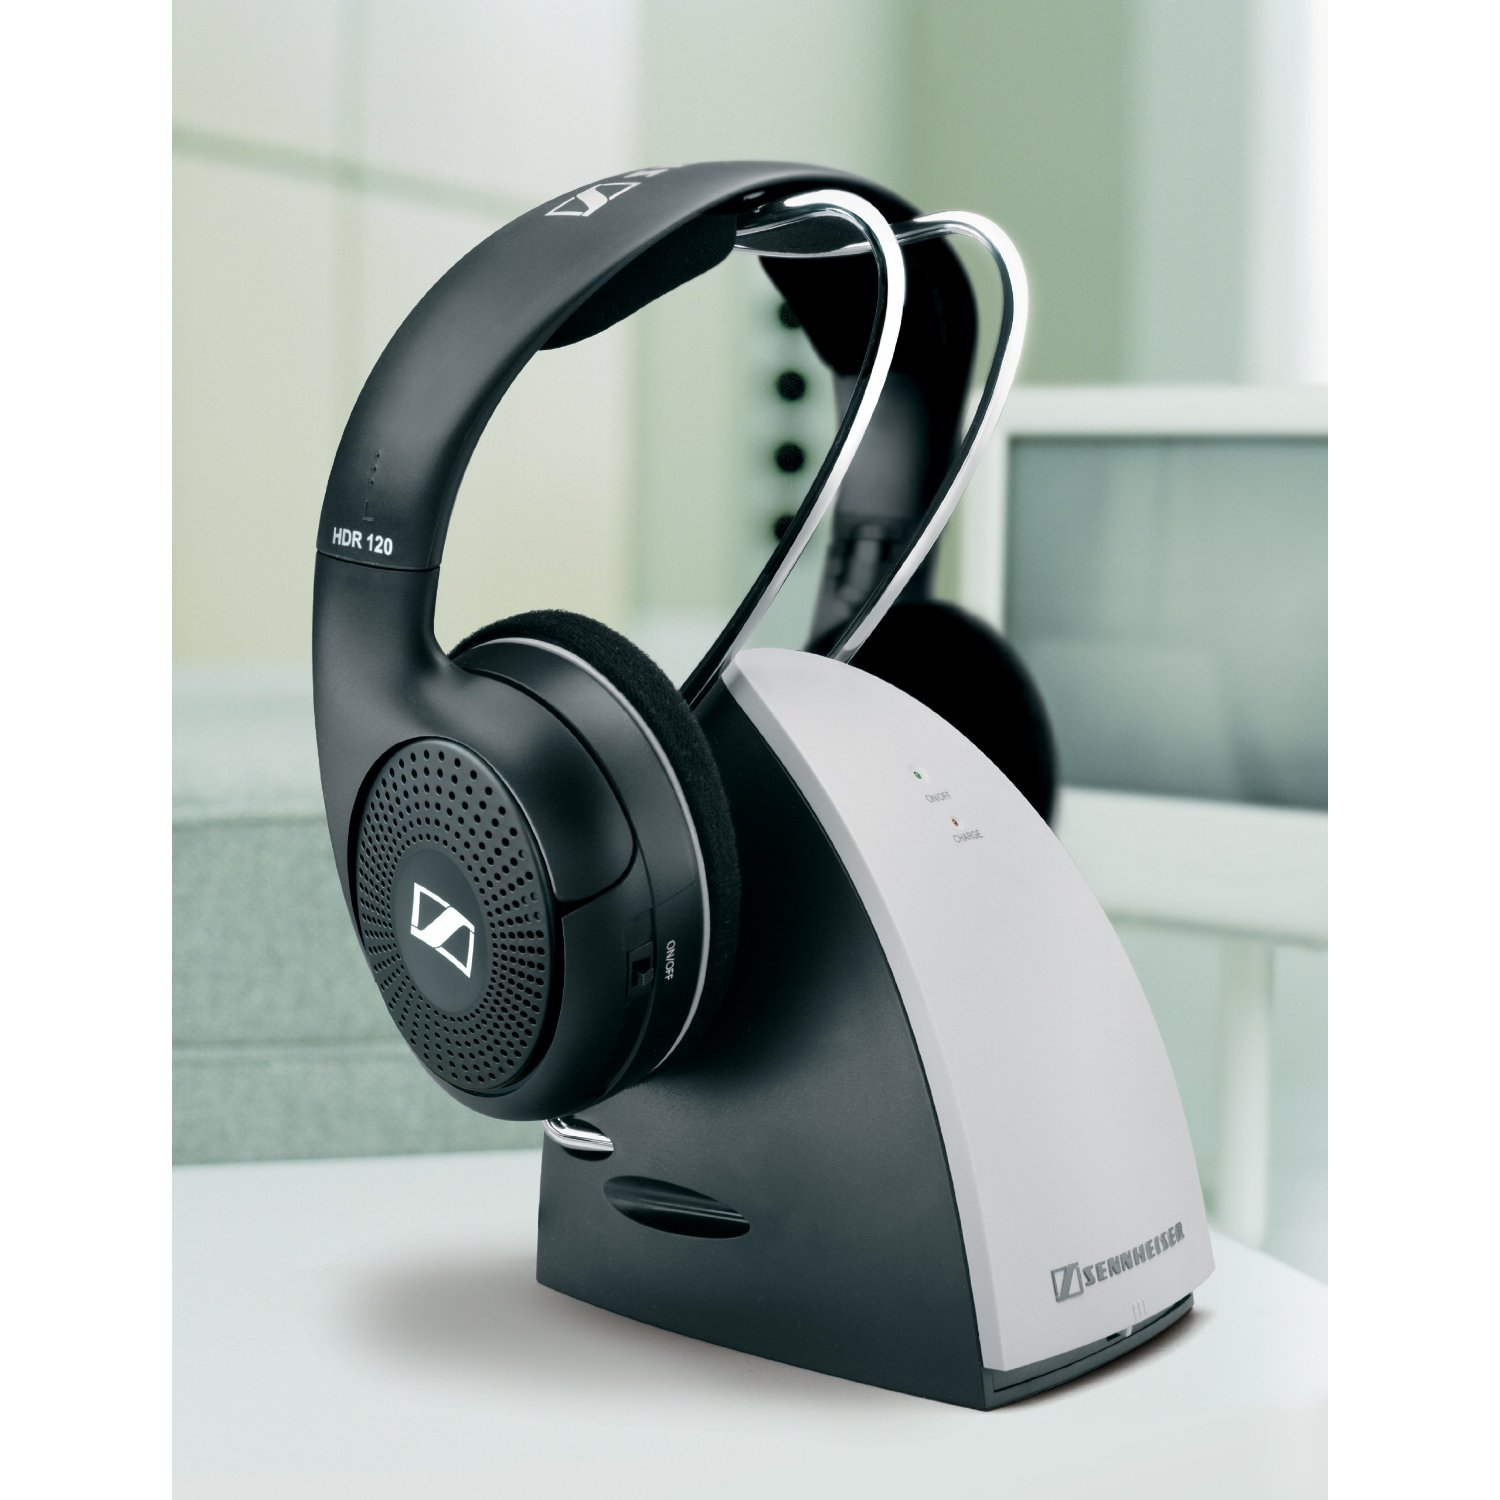 Sennheiser RS120 Over Ear 900MHz Wireless RF Headphones With Charging Cradle Review